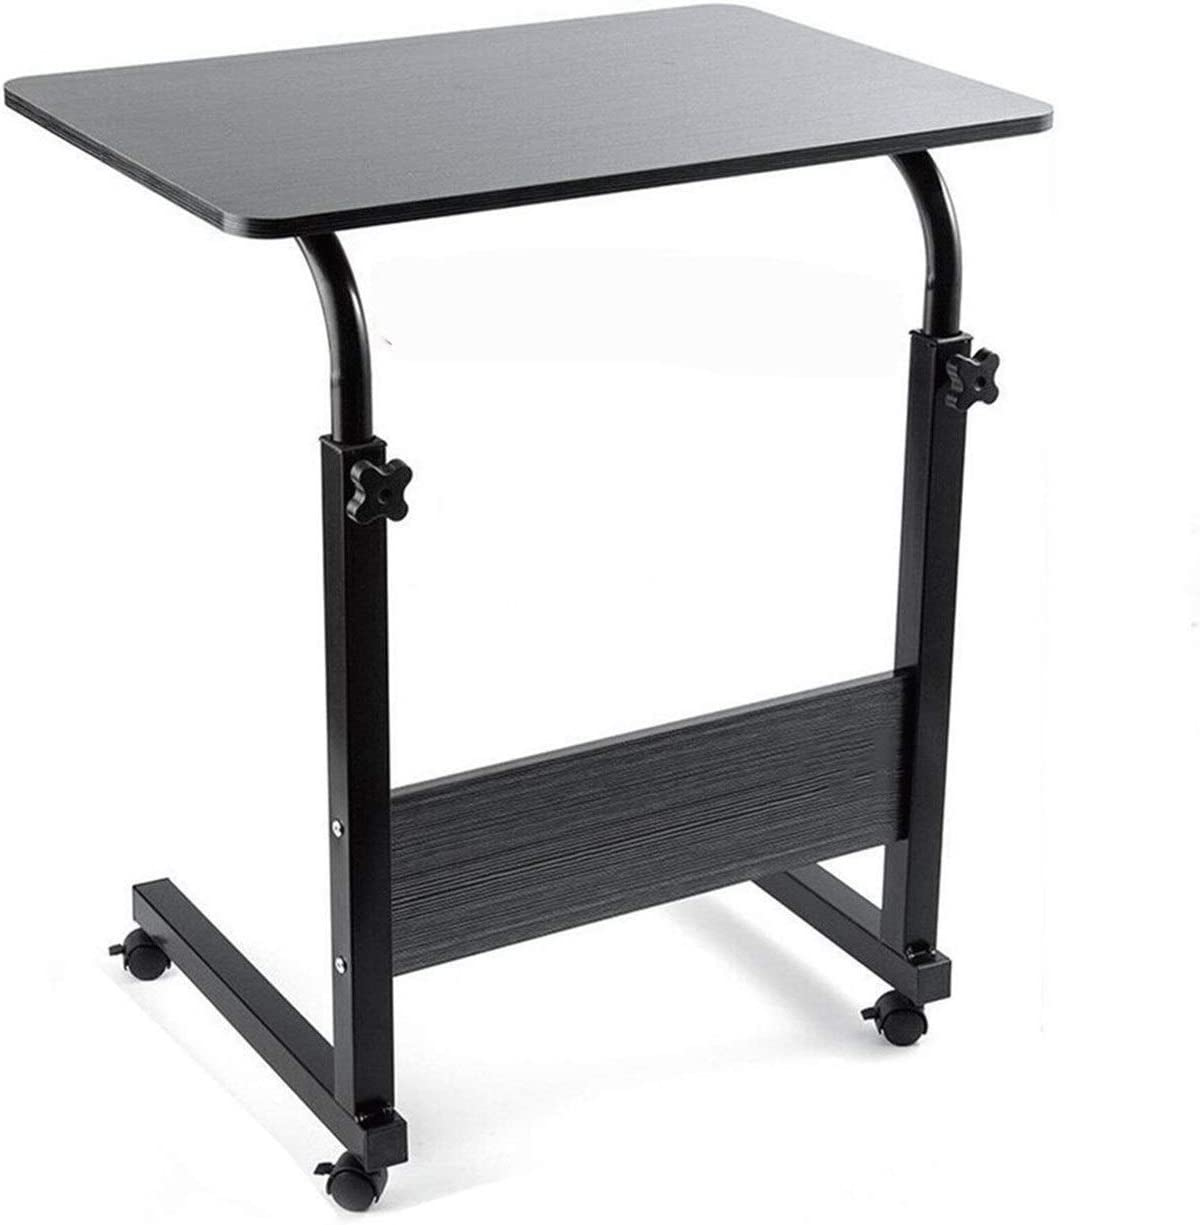 Foldable Laptop Stand Super popular specialty store Daily bargain sale Desk A Table Computer